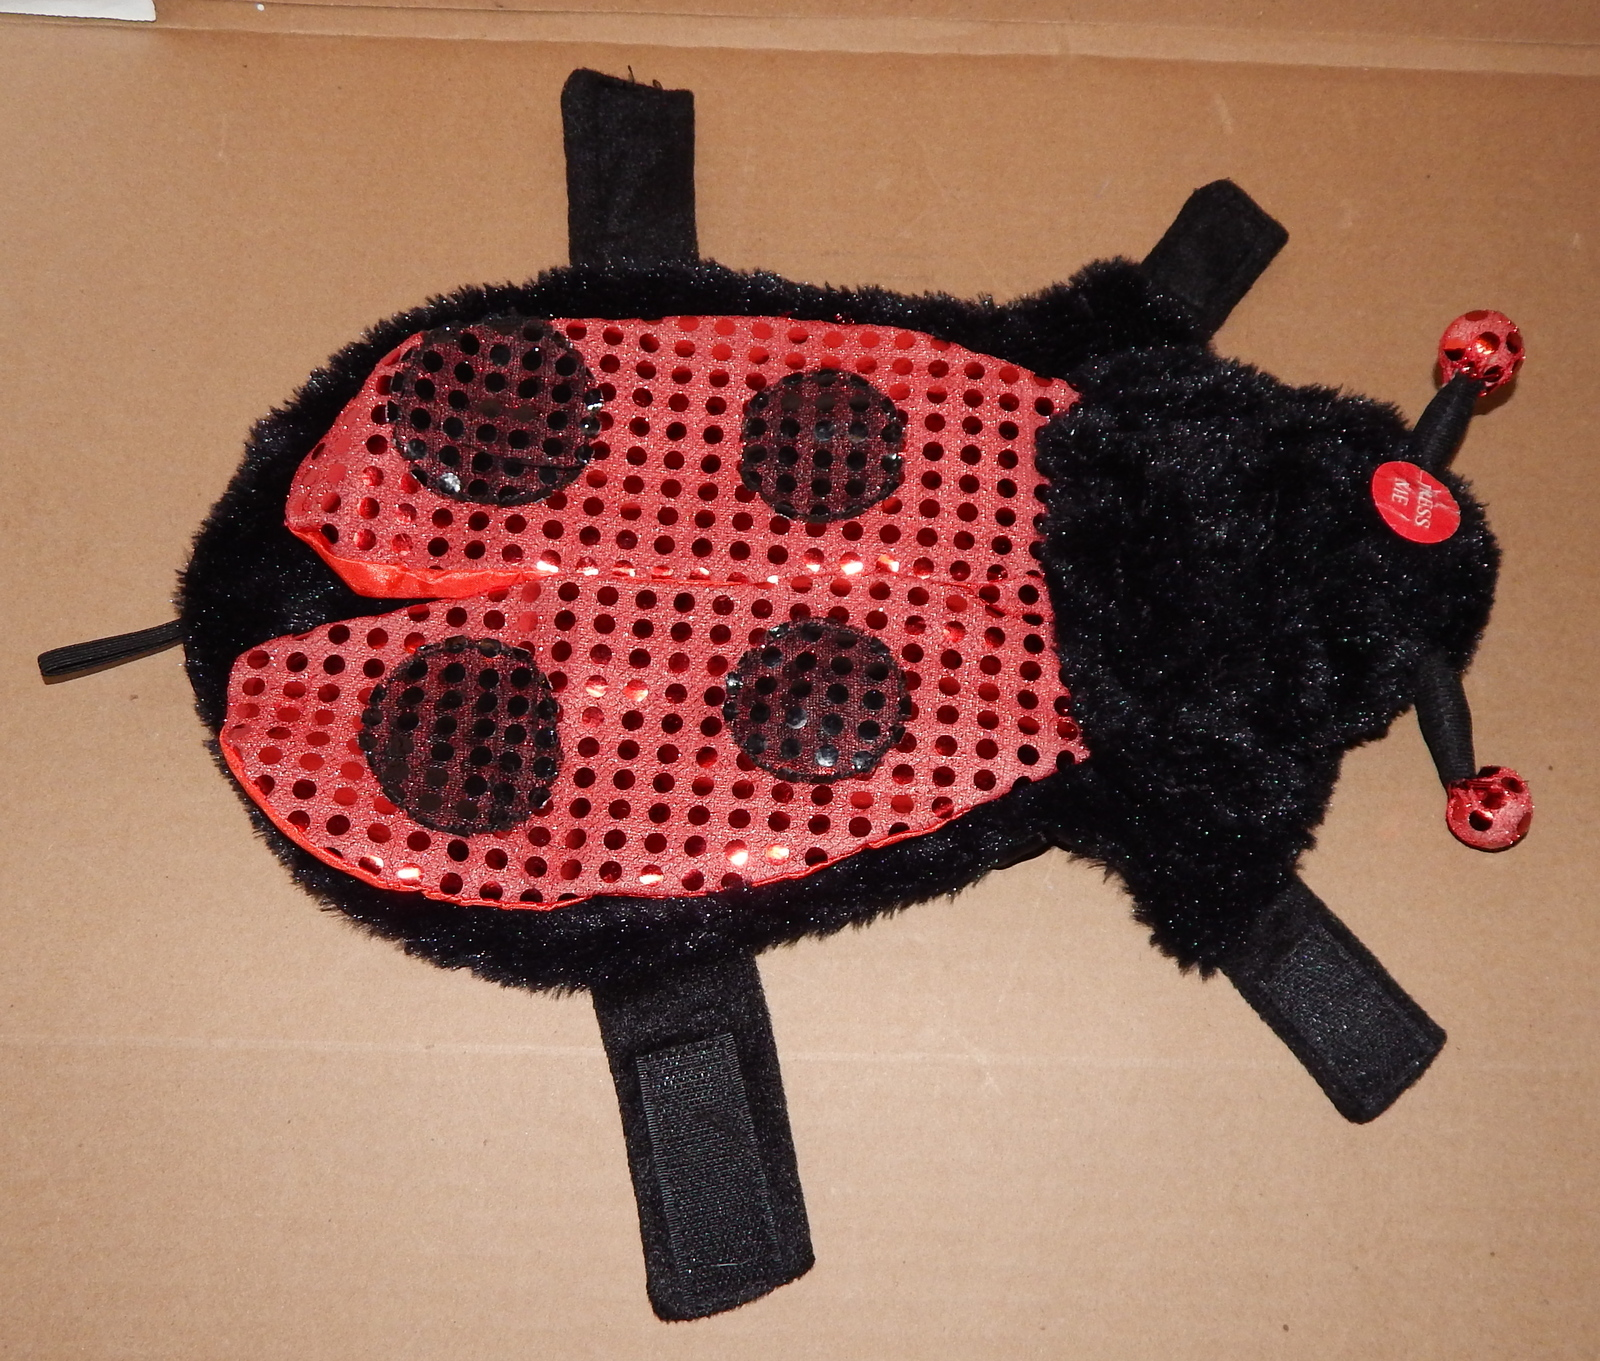 "Halloween Pet Costume Ladybug Light Up Eyes Small Fits 10"" To 13"" Dog 70L"